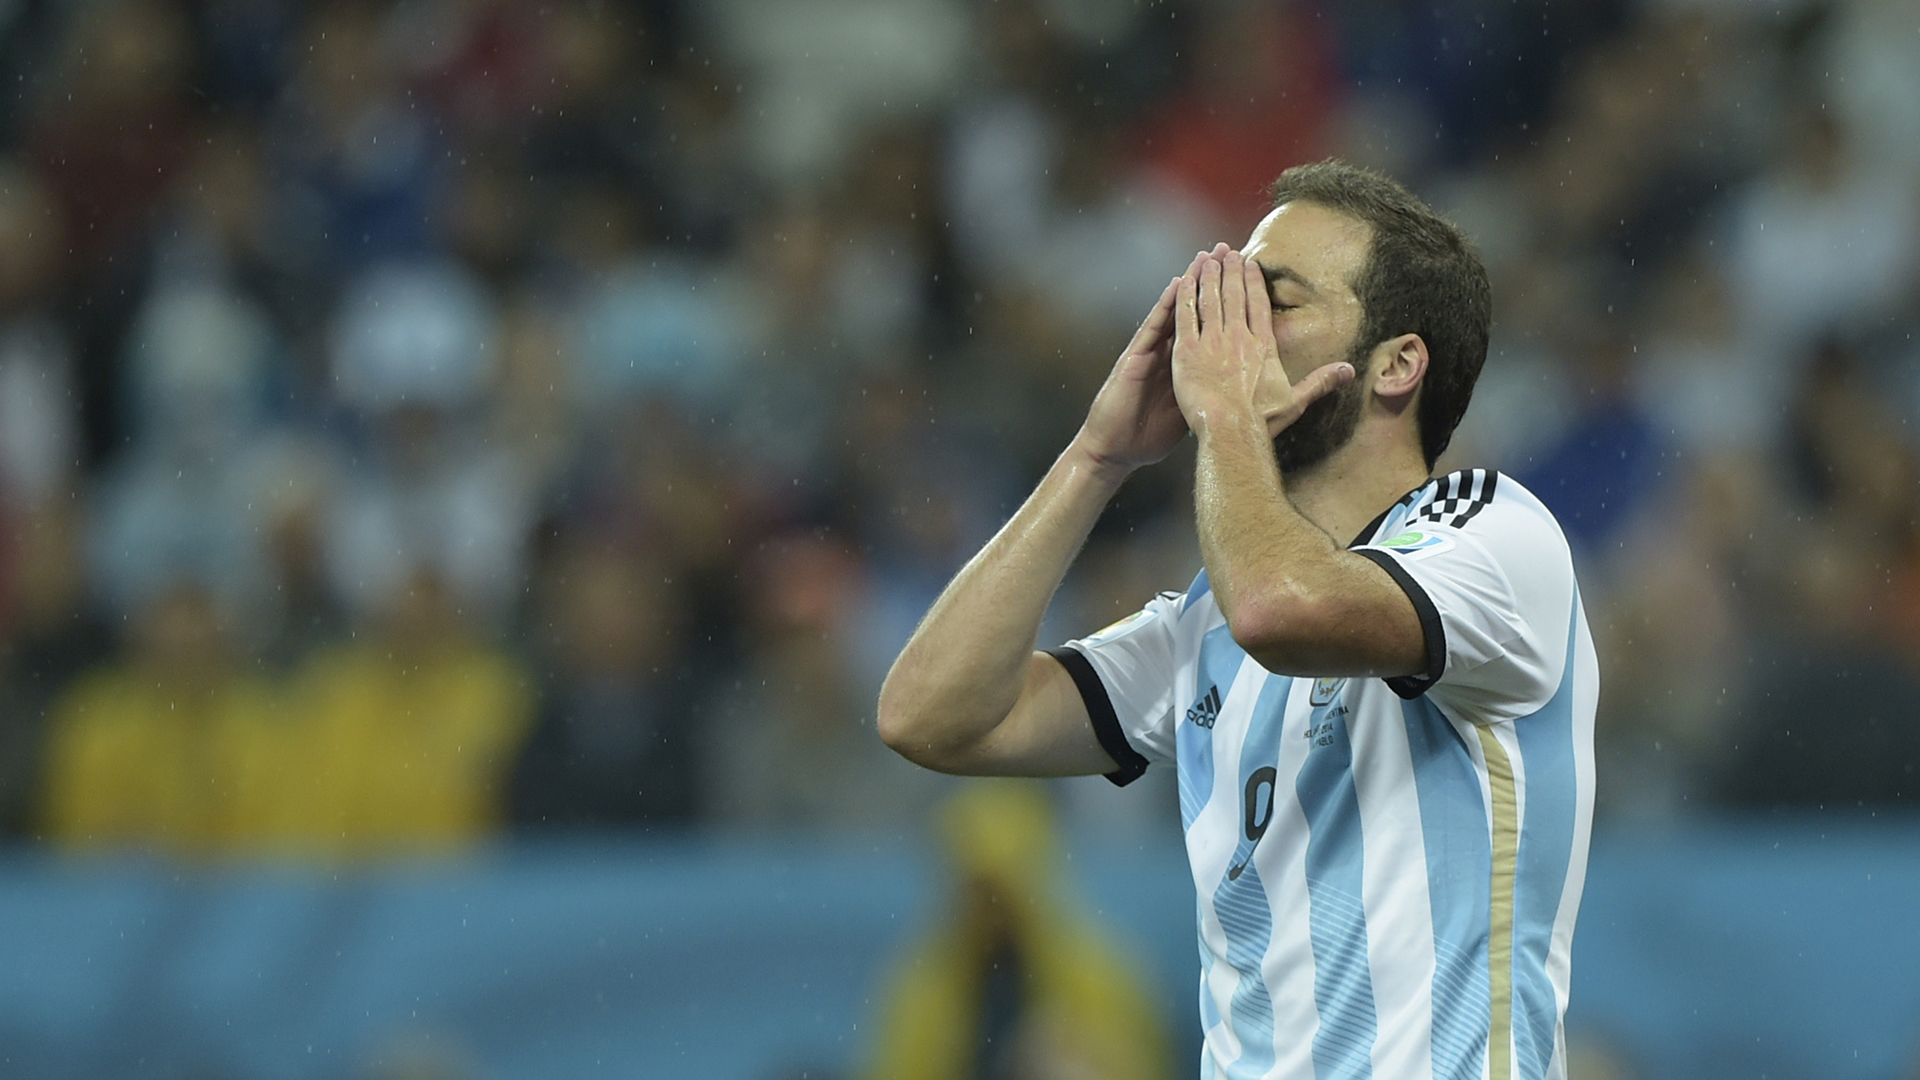 Gonzalo Higuain can goals for his club save career for his